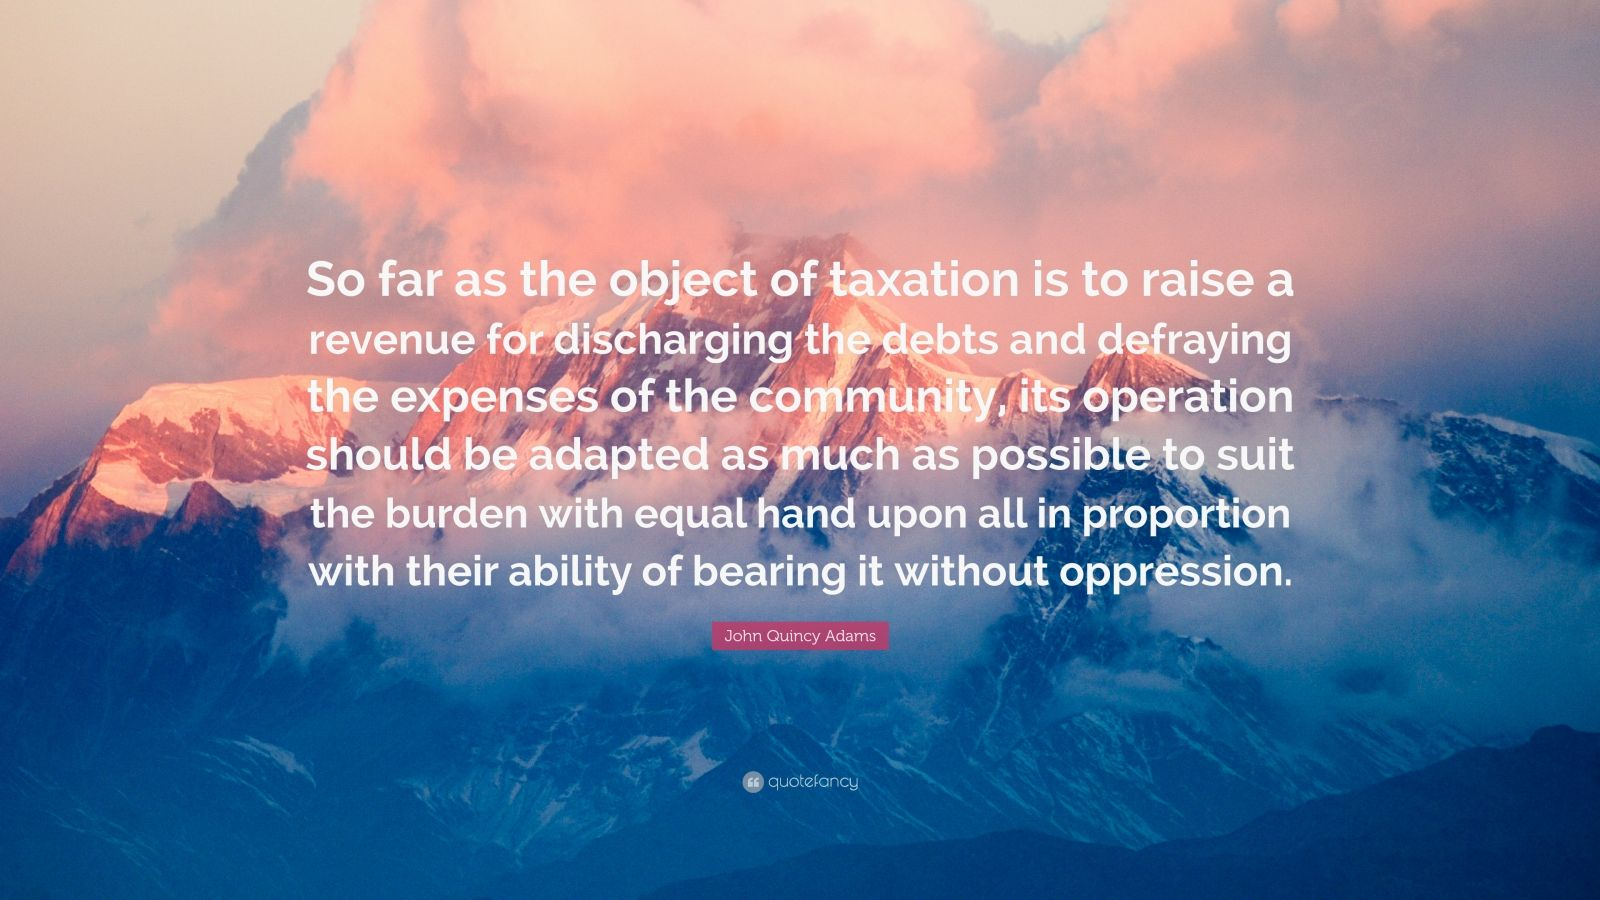 """John Quincy Adams Quote: """"So far as the object of taxation is to raise a revenue for discharging the debts and defraying the expenses of the community, its operation should be adapted as much as possible to suit the burden with equal hand upon all in proportion with their ability of bearing it without oppression."""""""